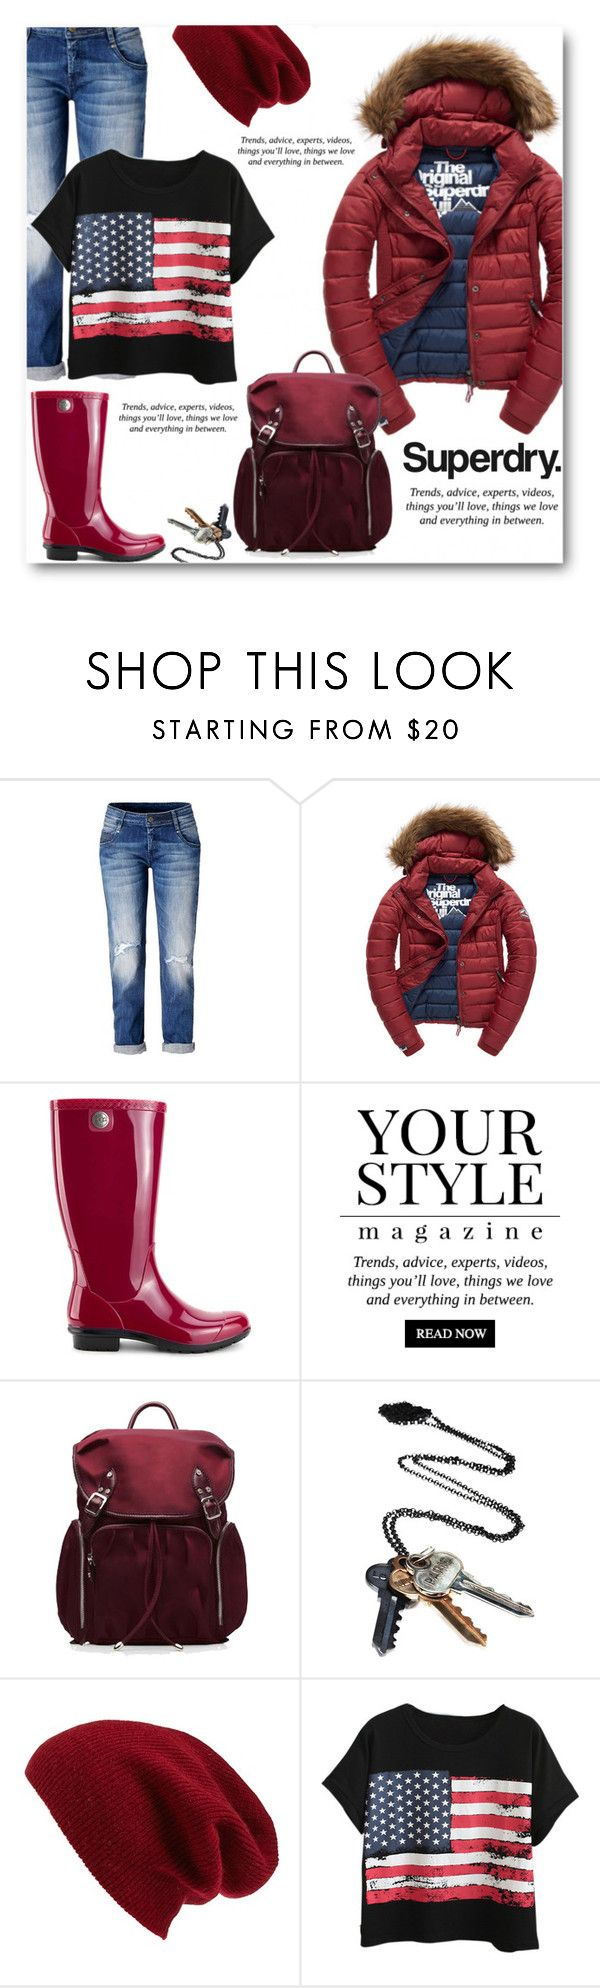 """The Cover Up – Jackets by Superdry: Contest Entry"" by din-fashion ❤ liked on Polyvore featuring Fuji, UGG, Pussycat, M Z Wallace, Stolen Girlfriends Club, Superdry, Halogen and Chicnova Fashion"